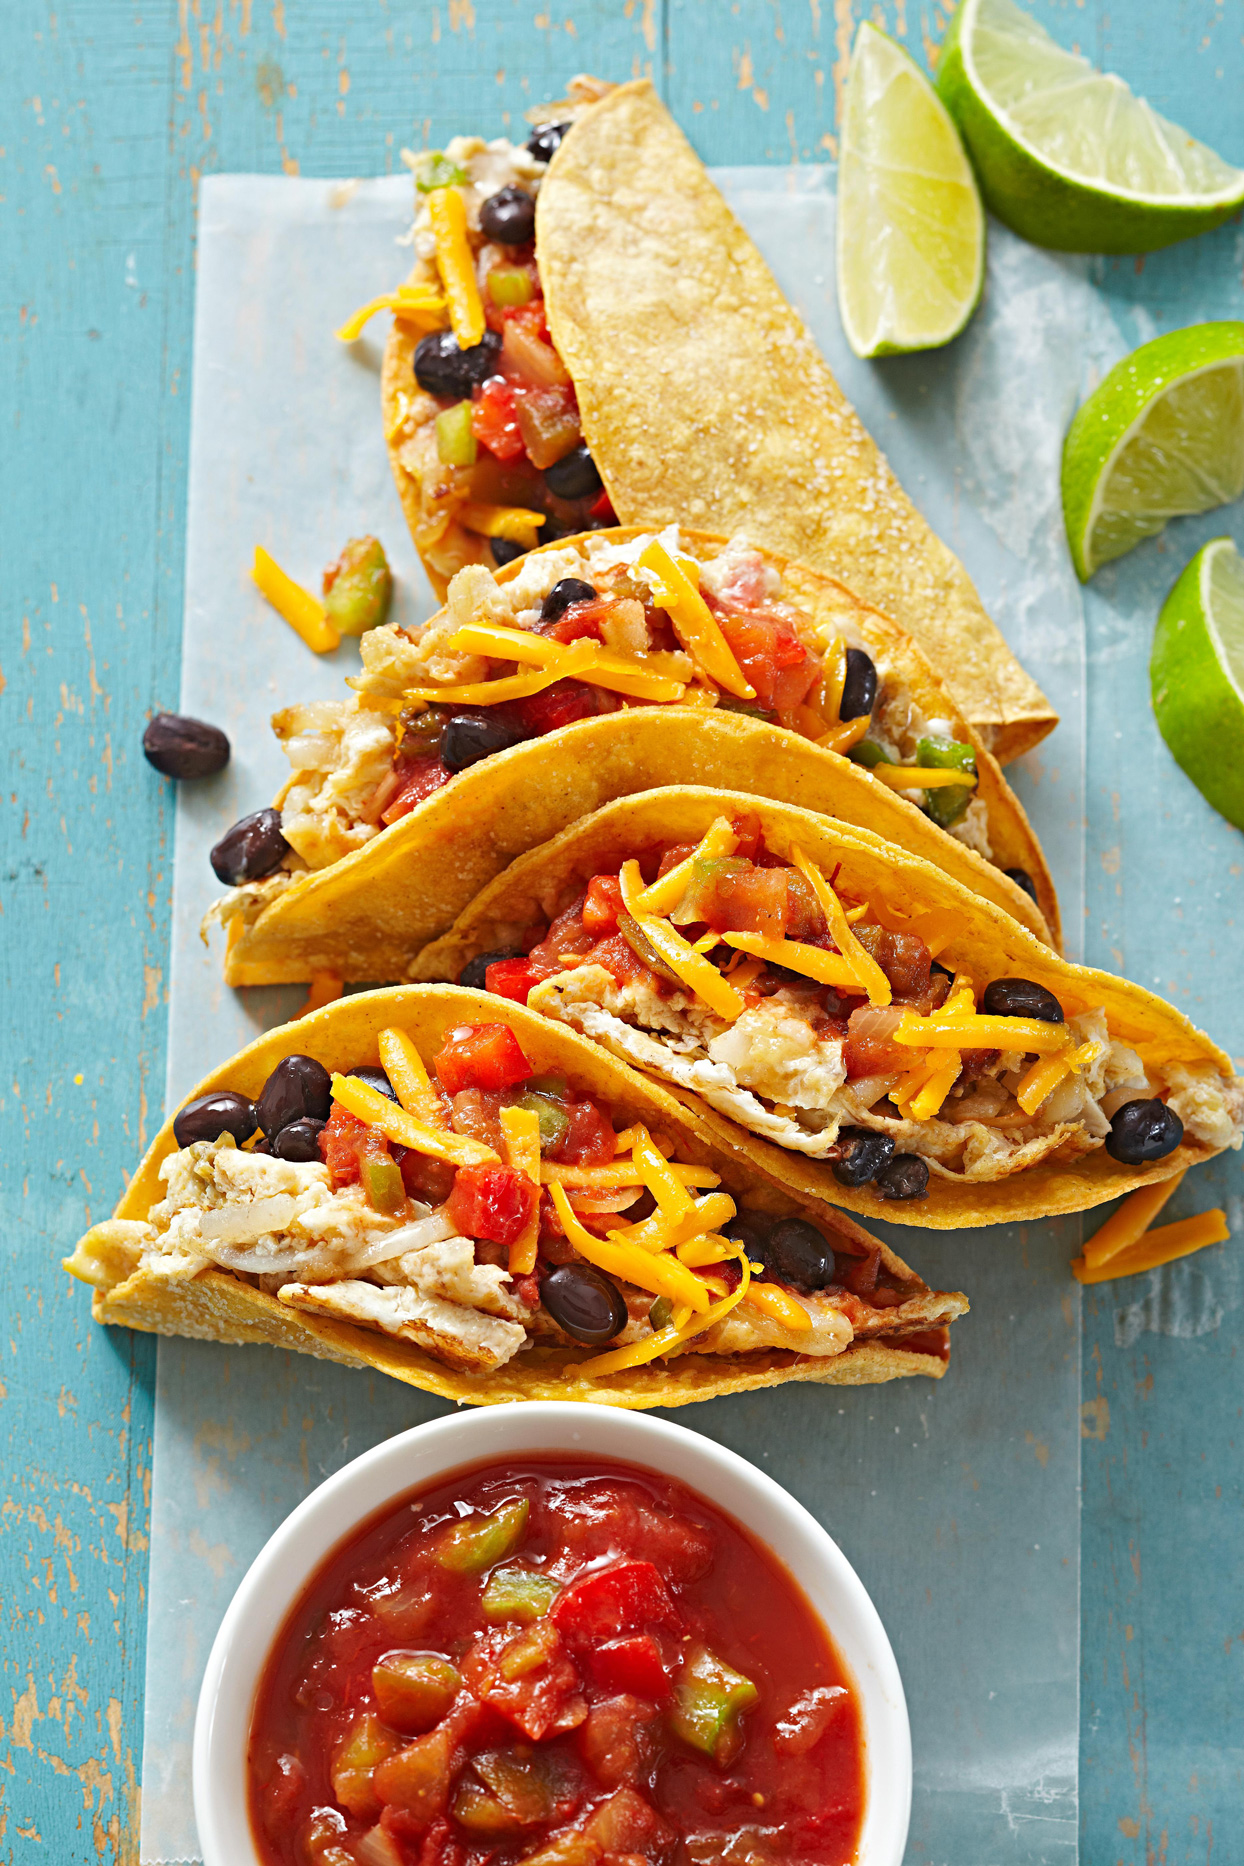 Hearty Breakfast Tacos with salsa and limes